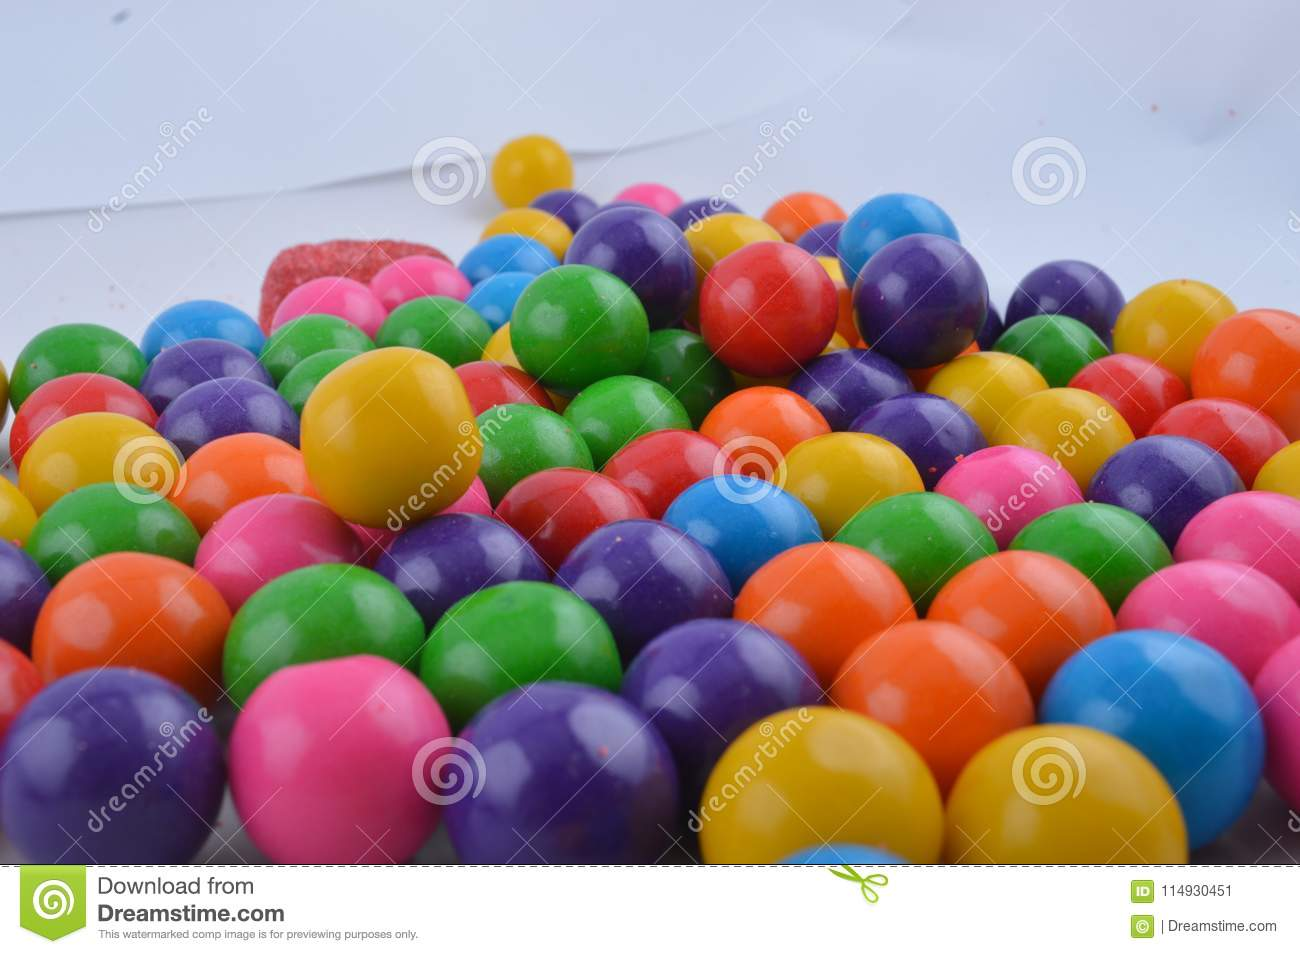 Colorful sweet gumballs thrown together